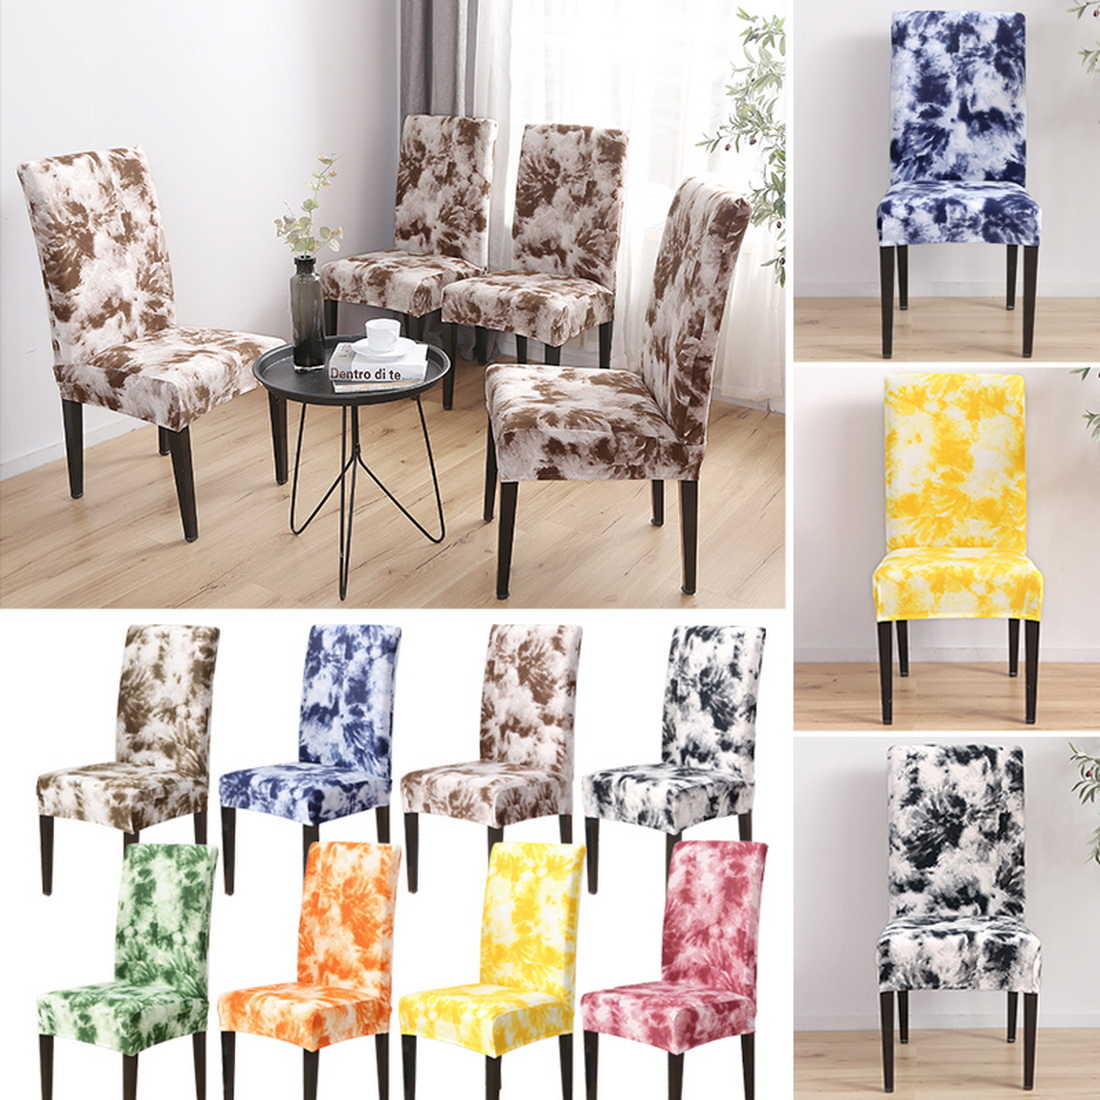 Details About Us Stretch Dining Chair Covers Slipcovers Ing Protective